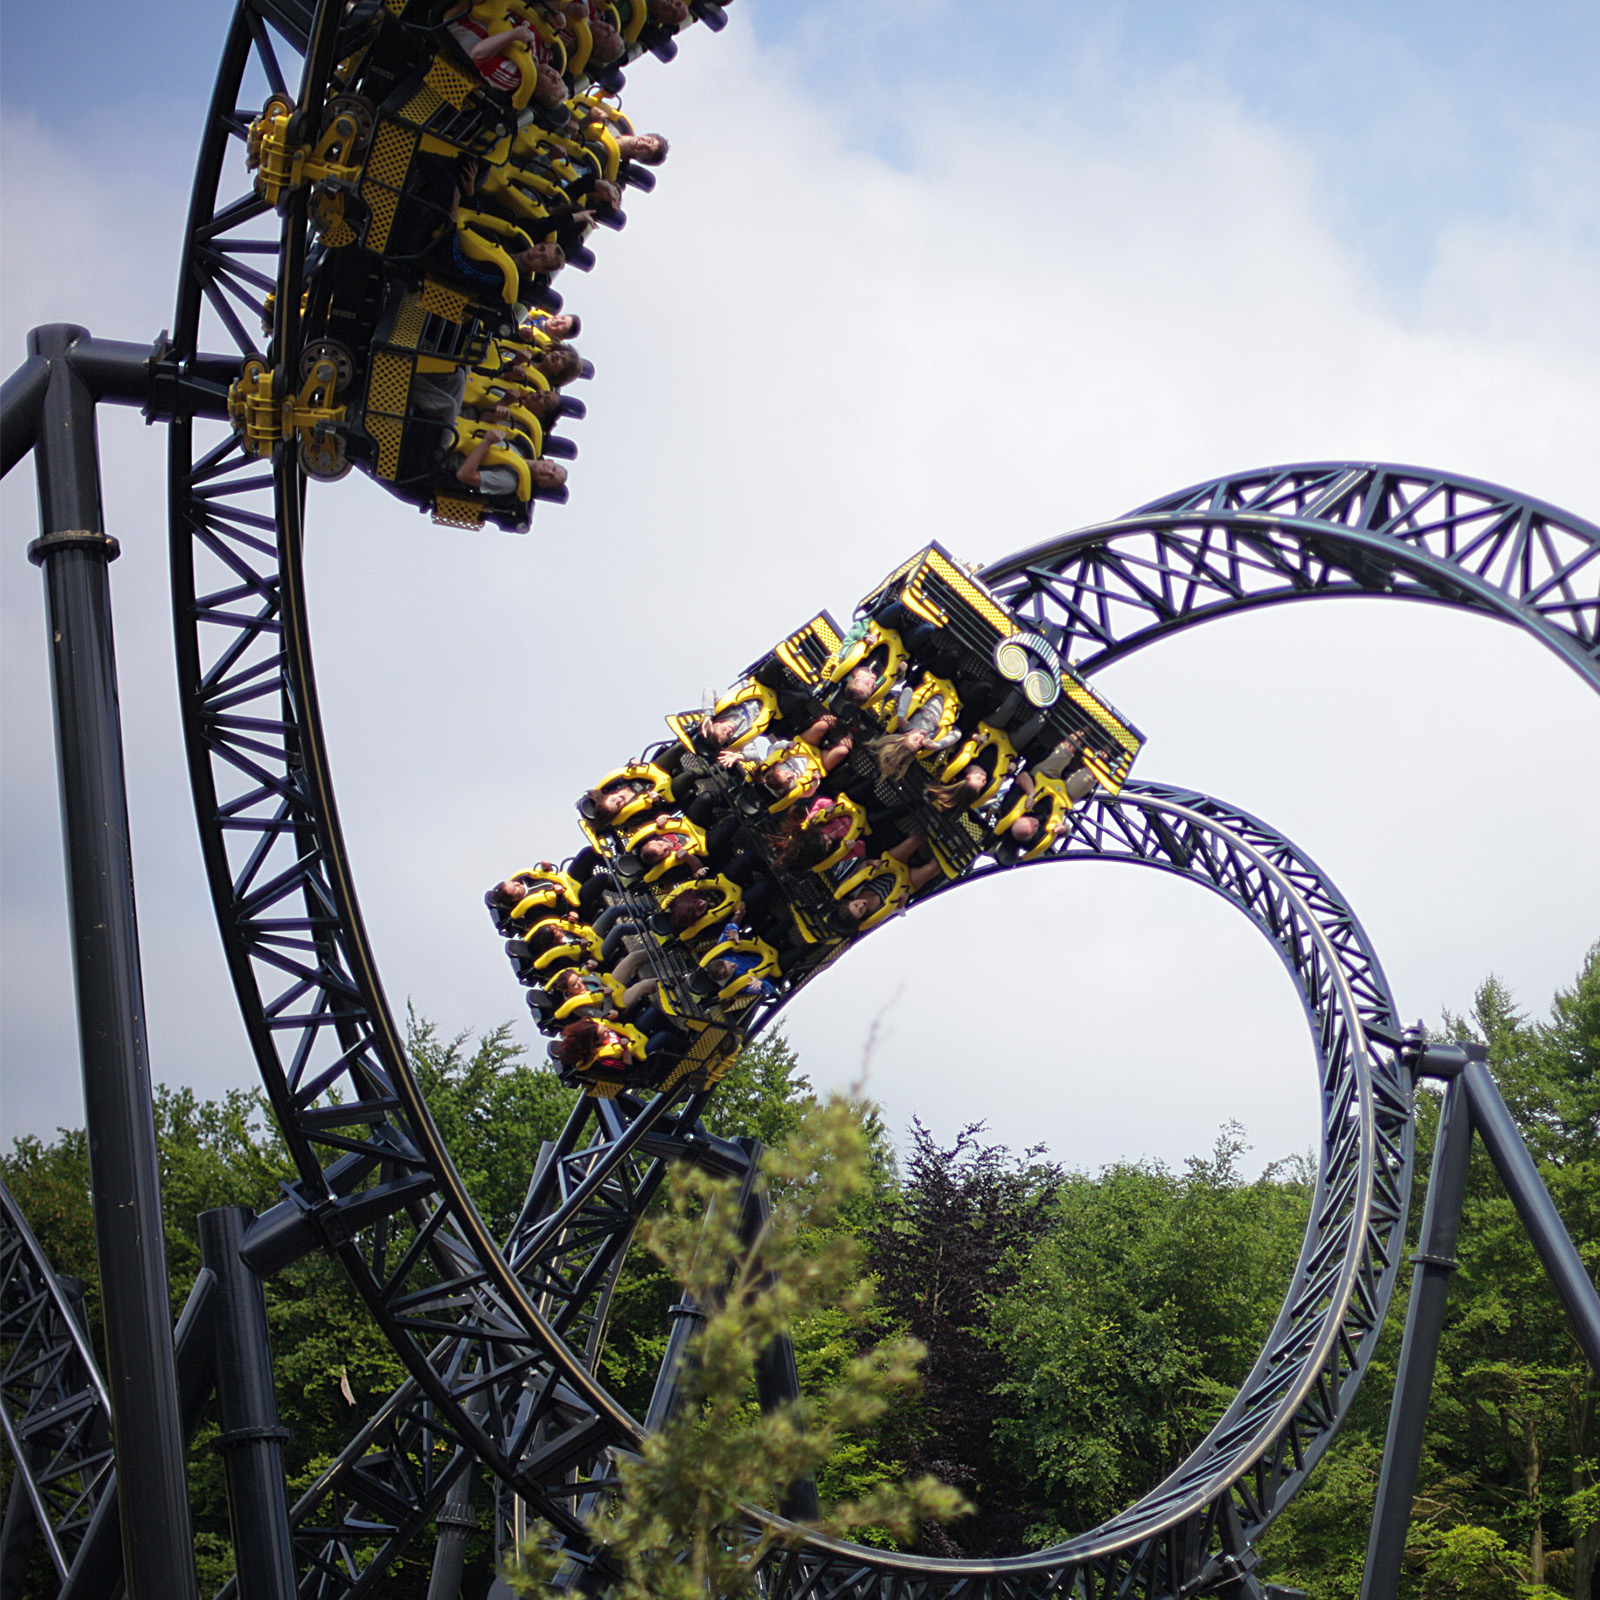 The Smiler construction